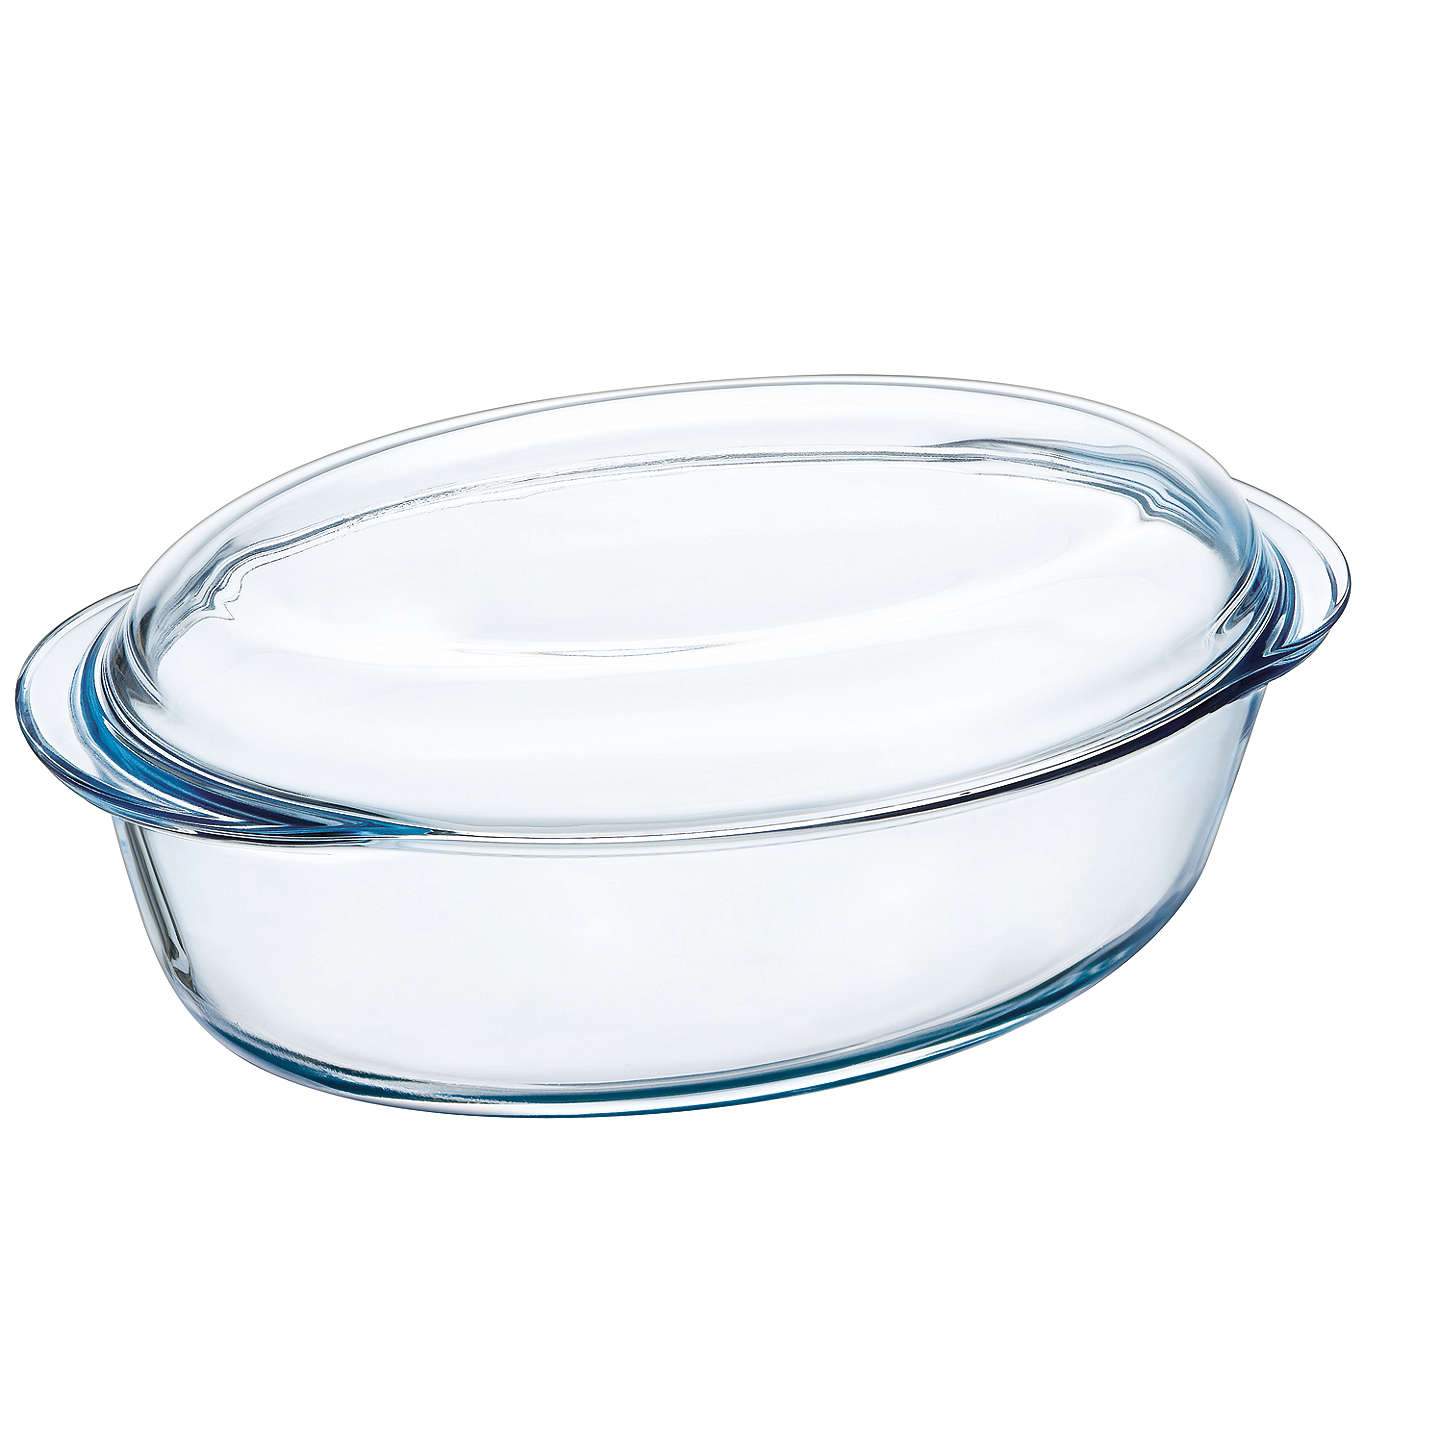 pyrex large oval glass casserole dish 4l at john lewis